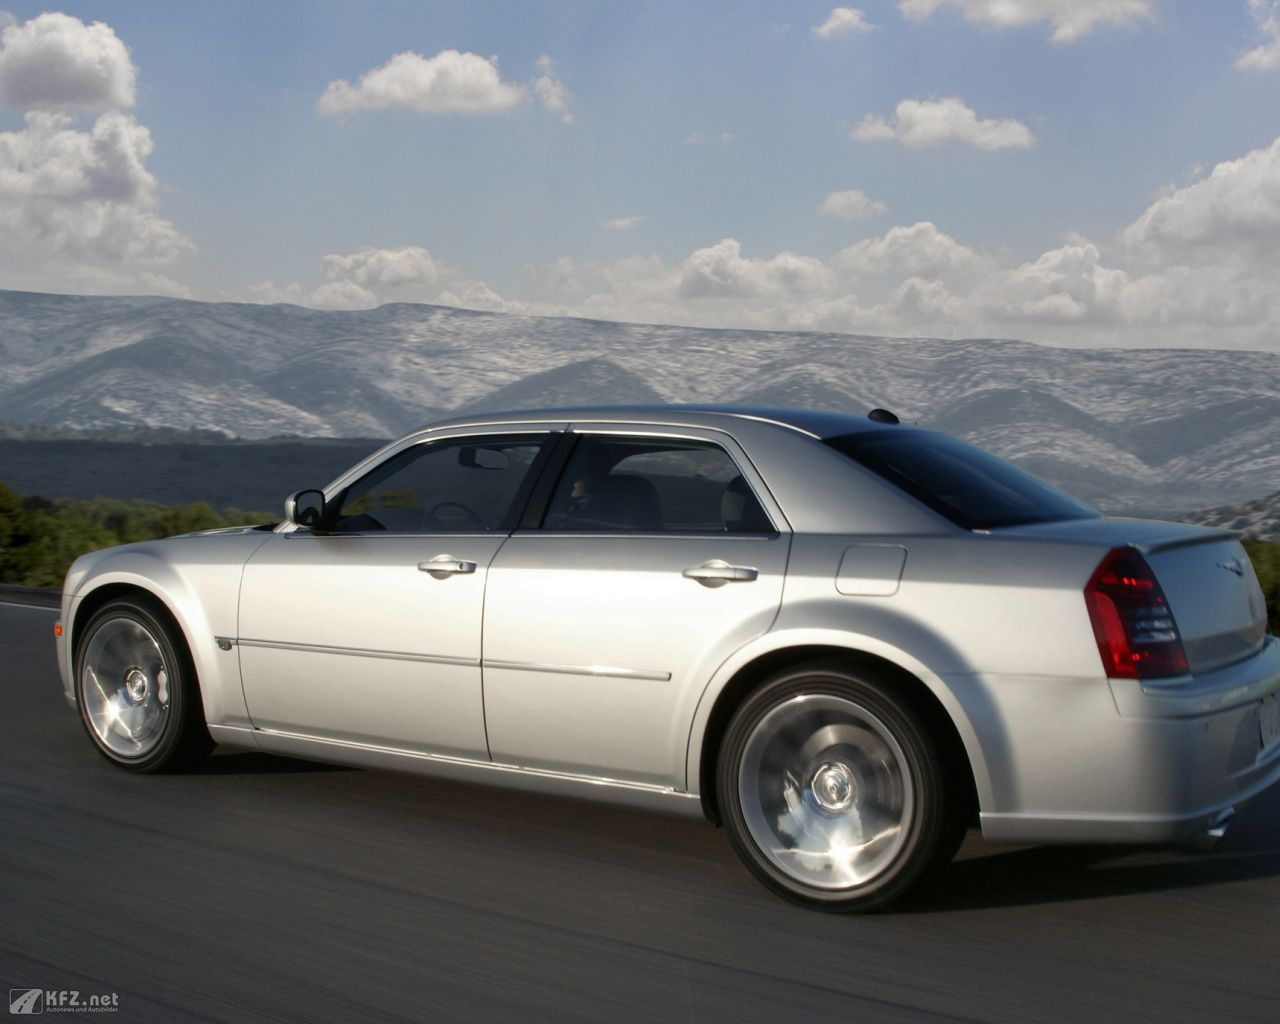 chrysler-300c-1280x1024-31